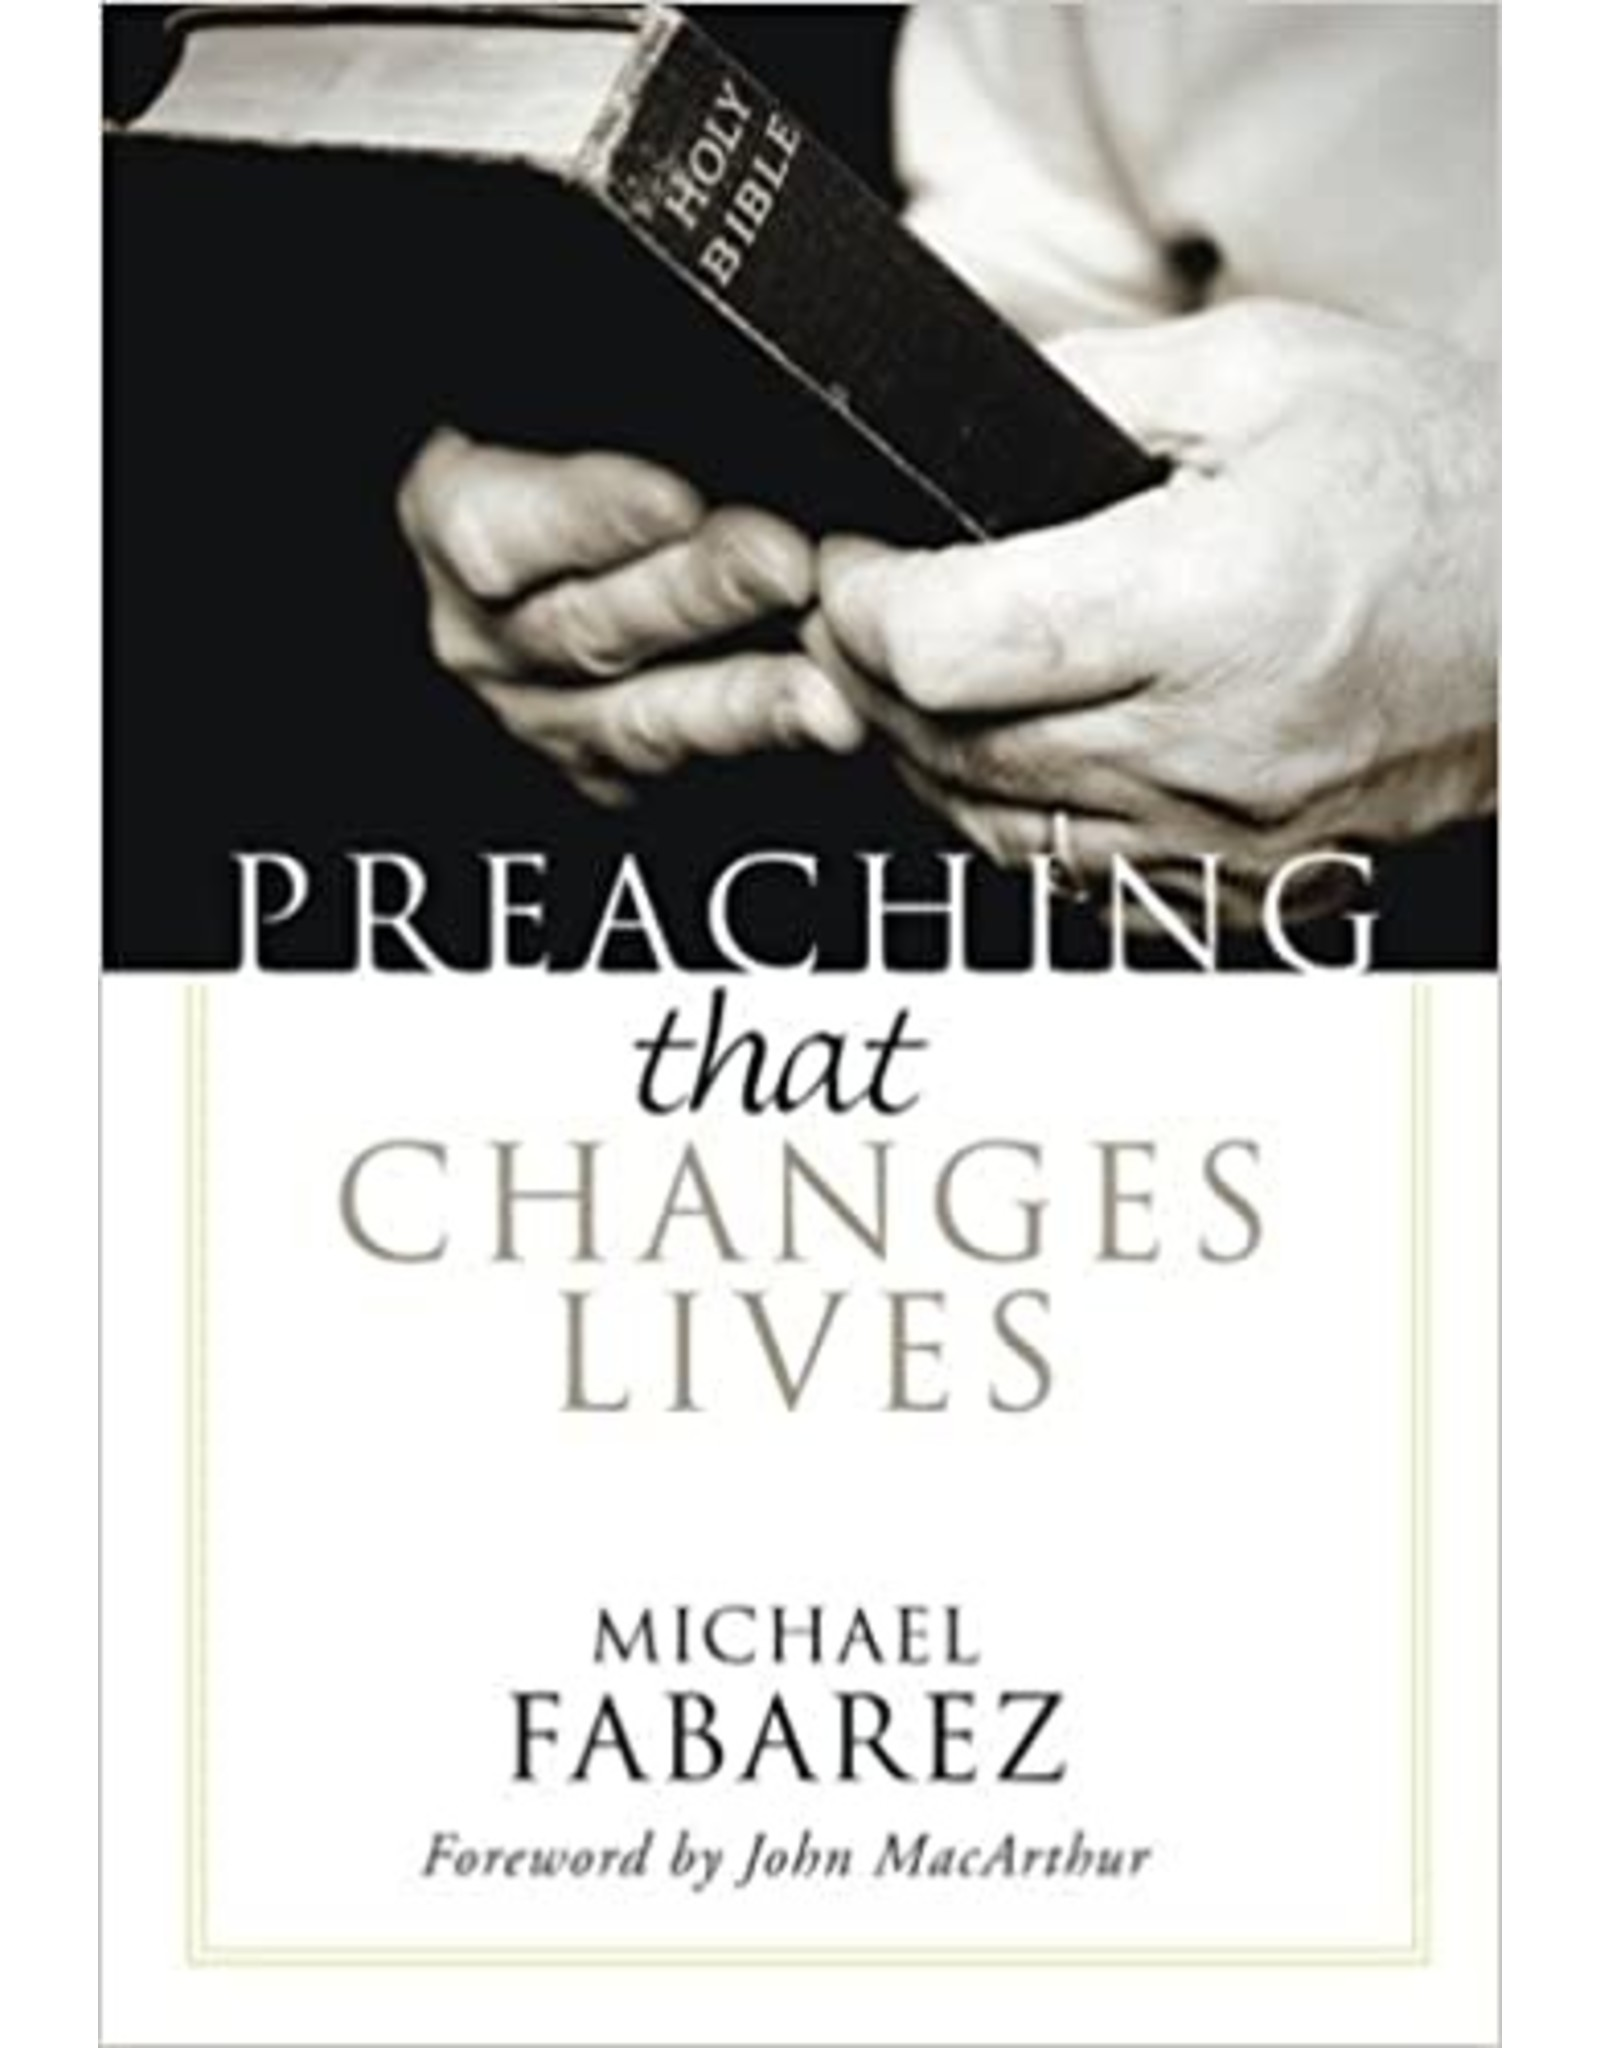 Fabarez Preaching that Changes Lives